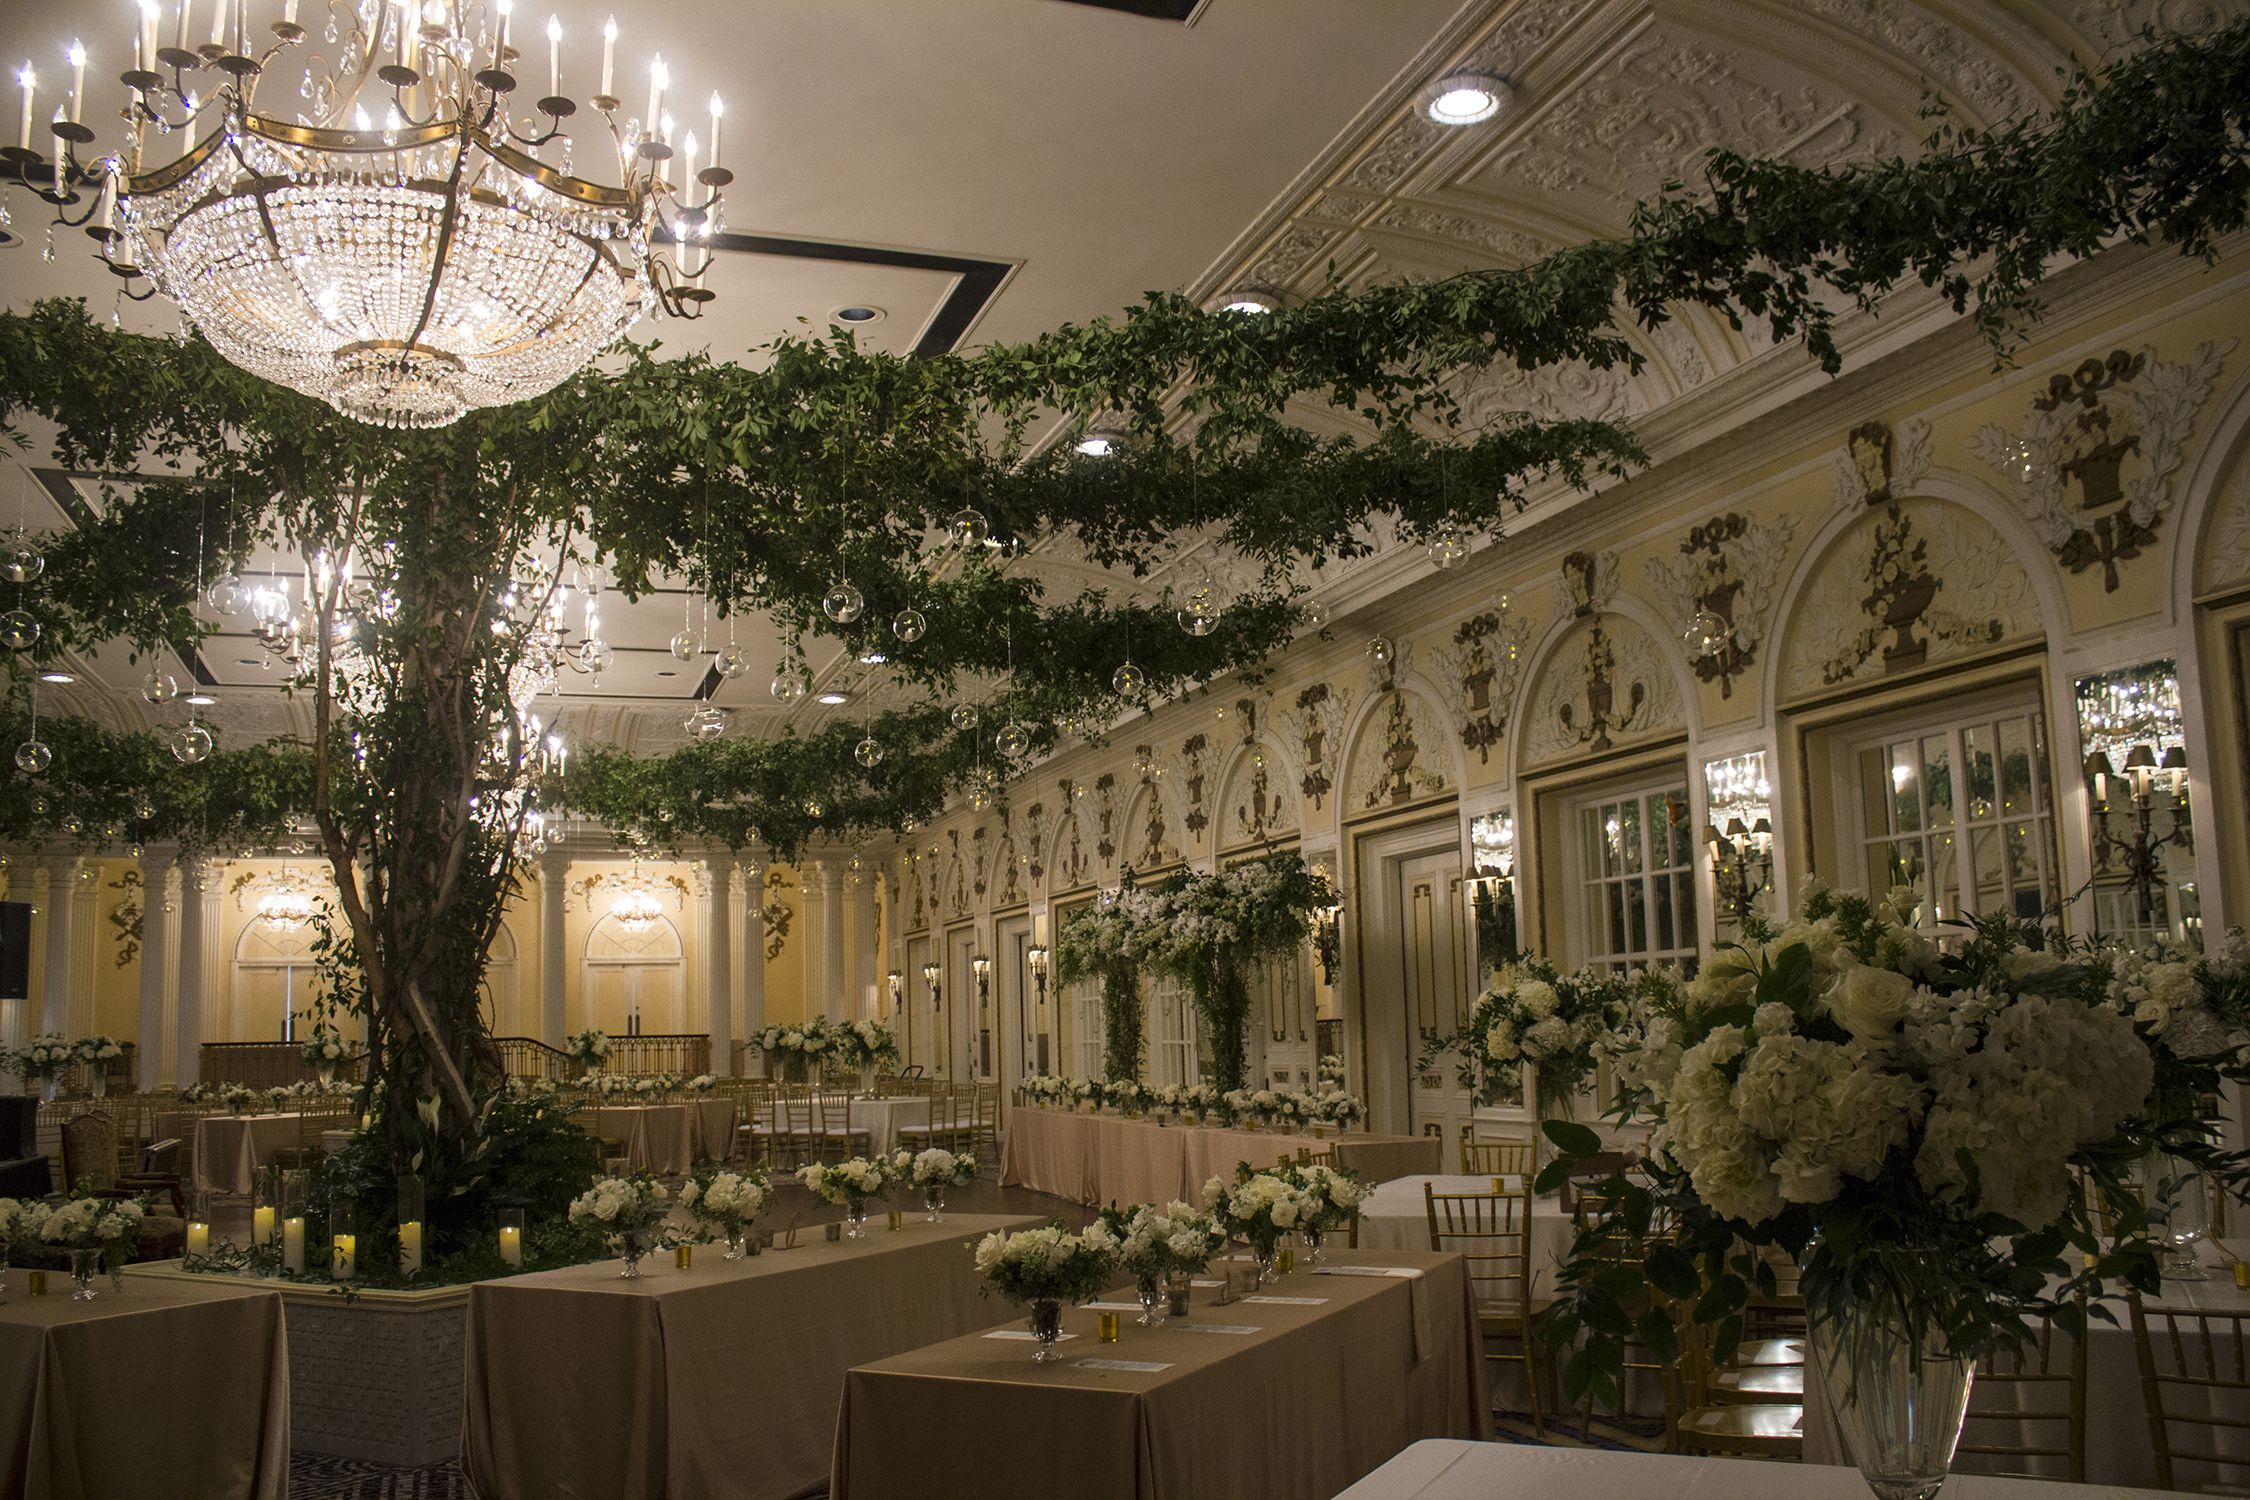 Garden Party Wedding Reception At The Peabody Hotel In Memphis Tn